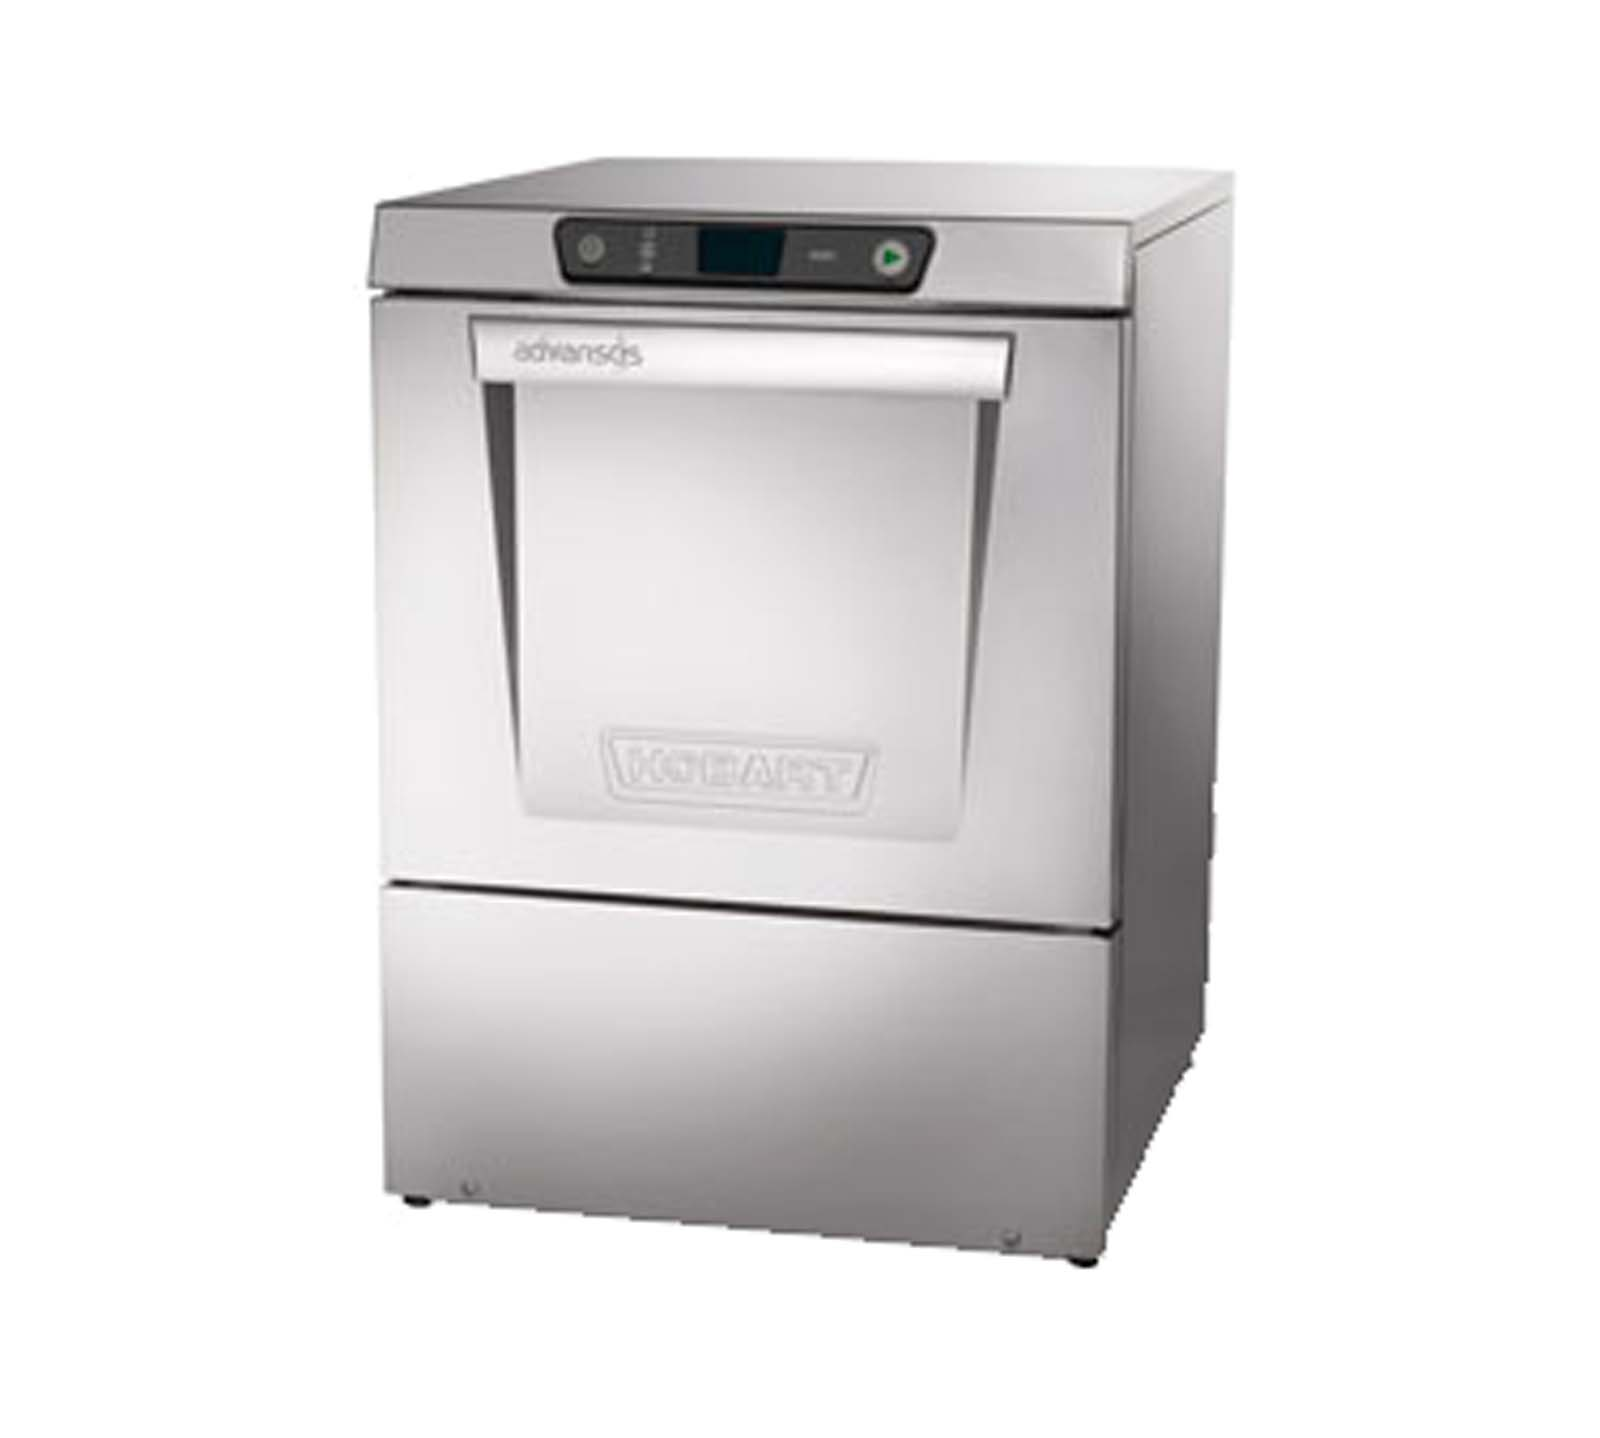 Hobart LXER-2 Advansys Undercounter Dishwasher with Booster Heater Hot Water Sanitizing by